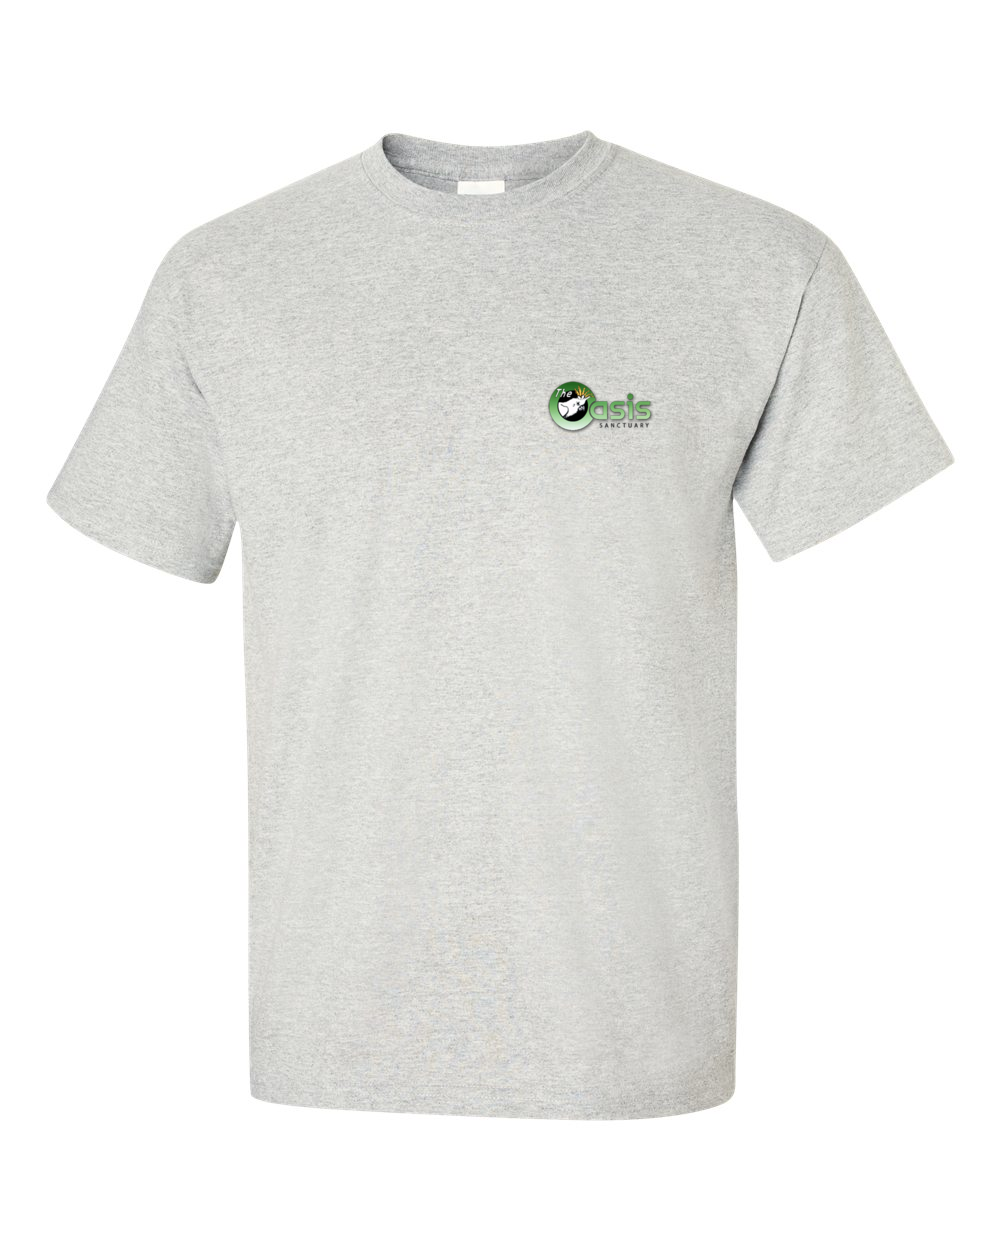 Embroidered Oasis T Shirt